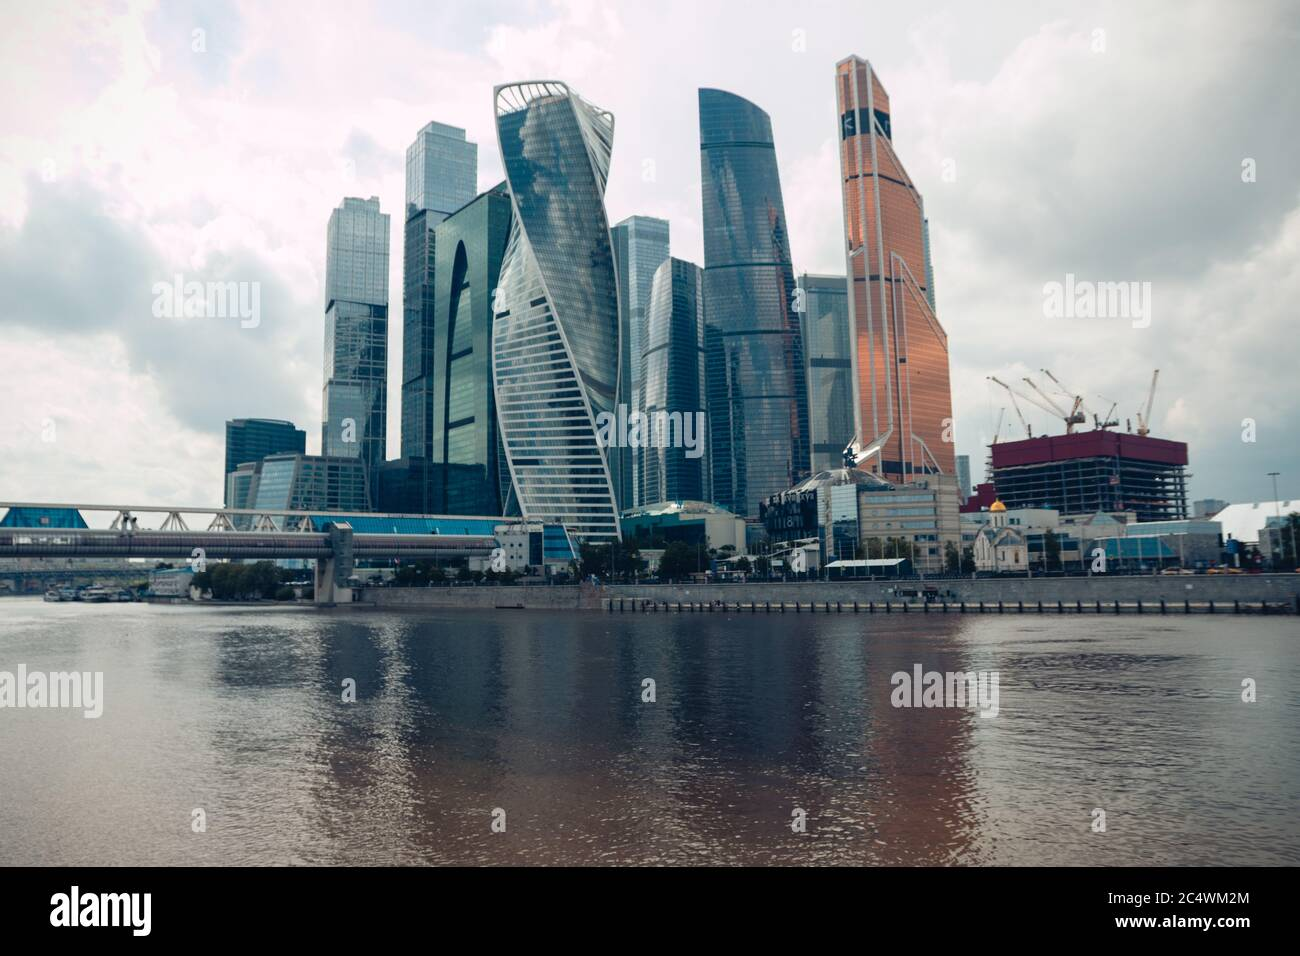 Scenic View Of The Skyscrapers Of The Moscow City International Business Center Moscow Skyline Moscow Russia June 2020 Stock Photo Alamy